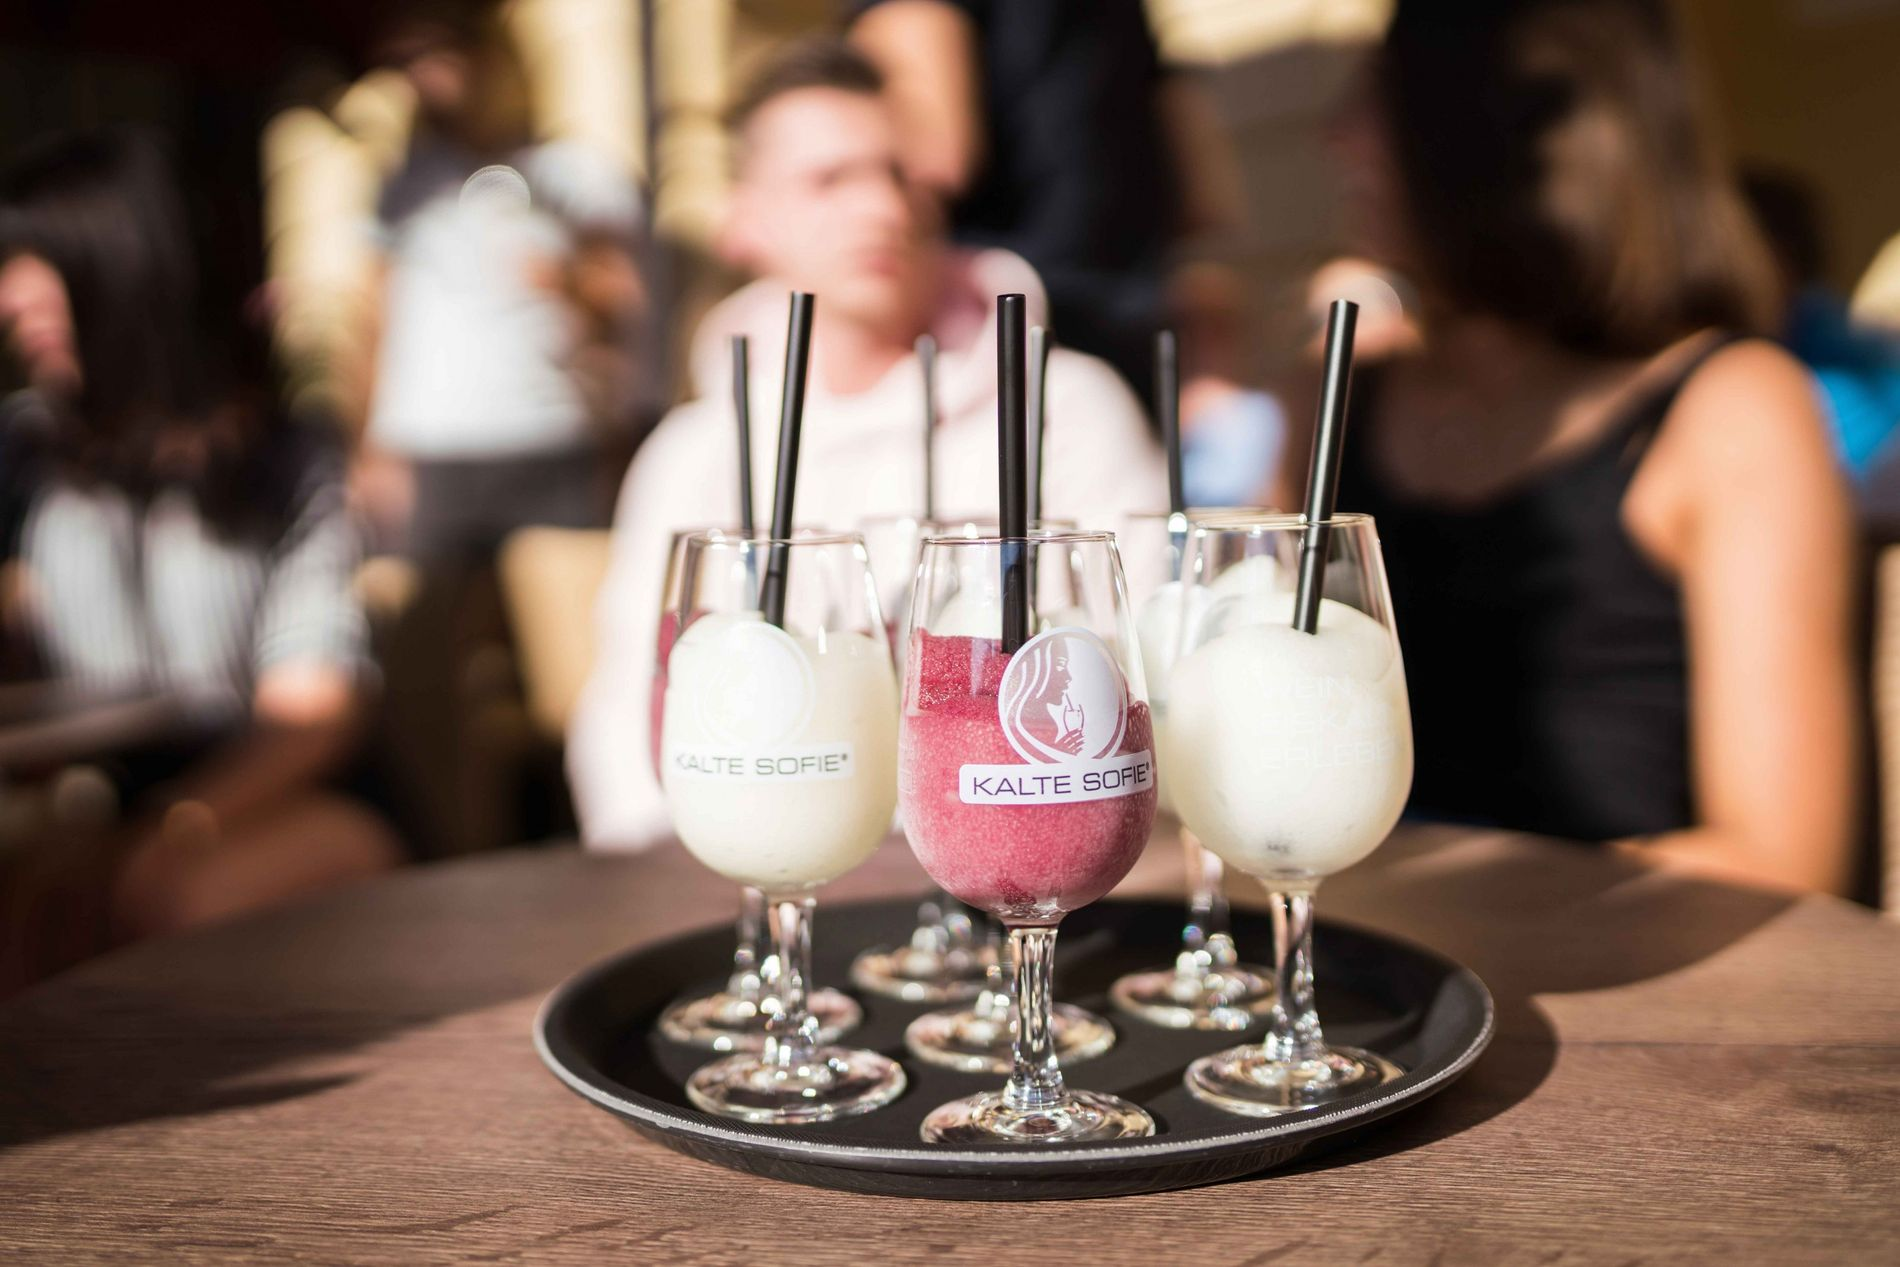 In sunny weather try a Kalte Sophie; a red or white wine slushie that's become Freiburg's ...